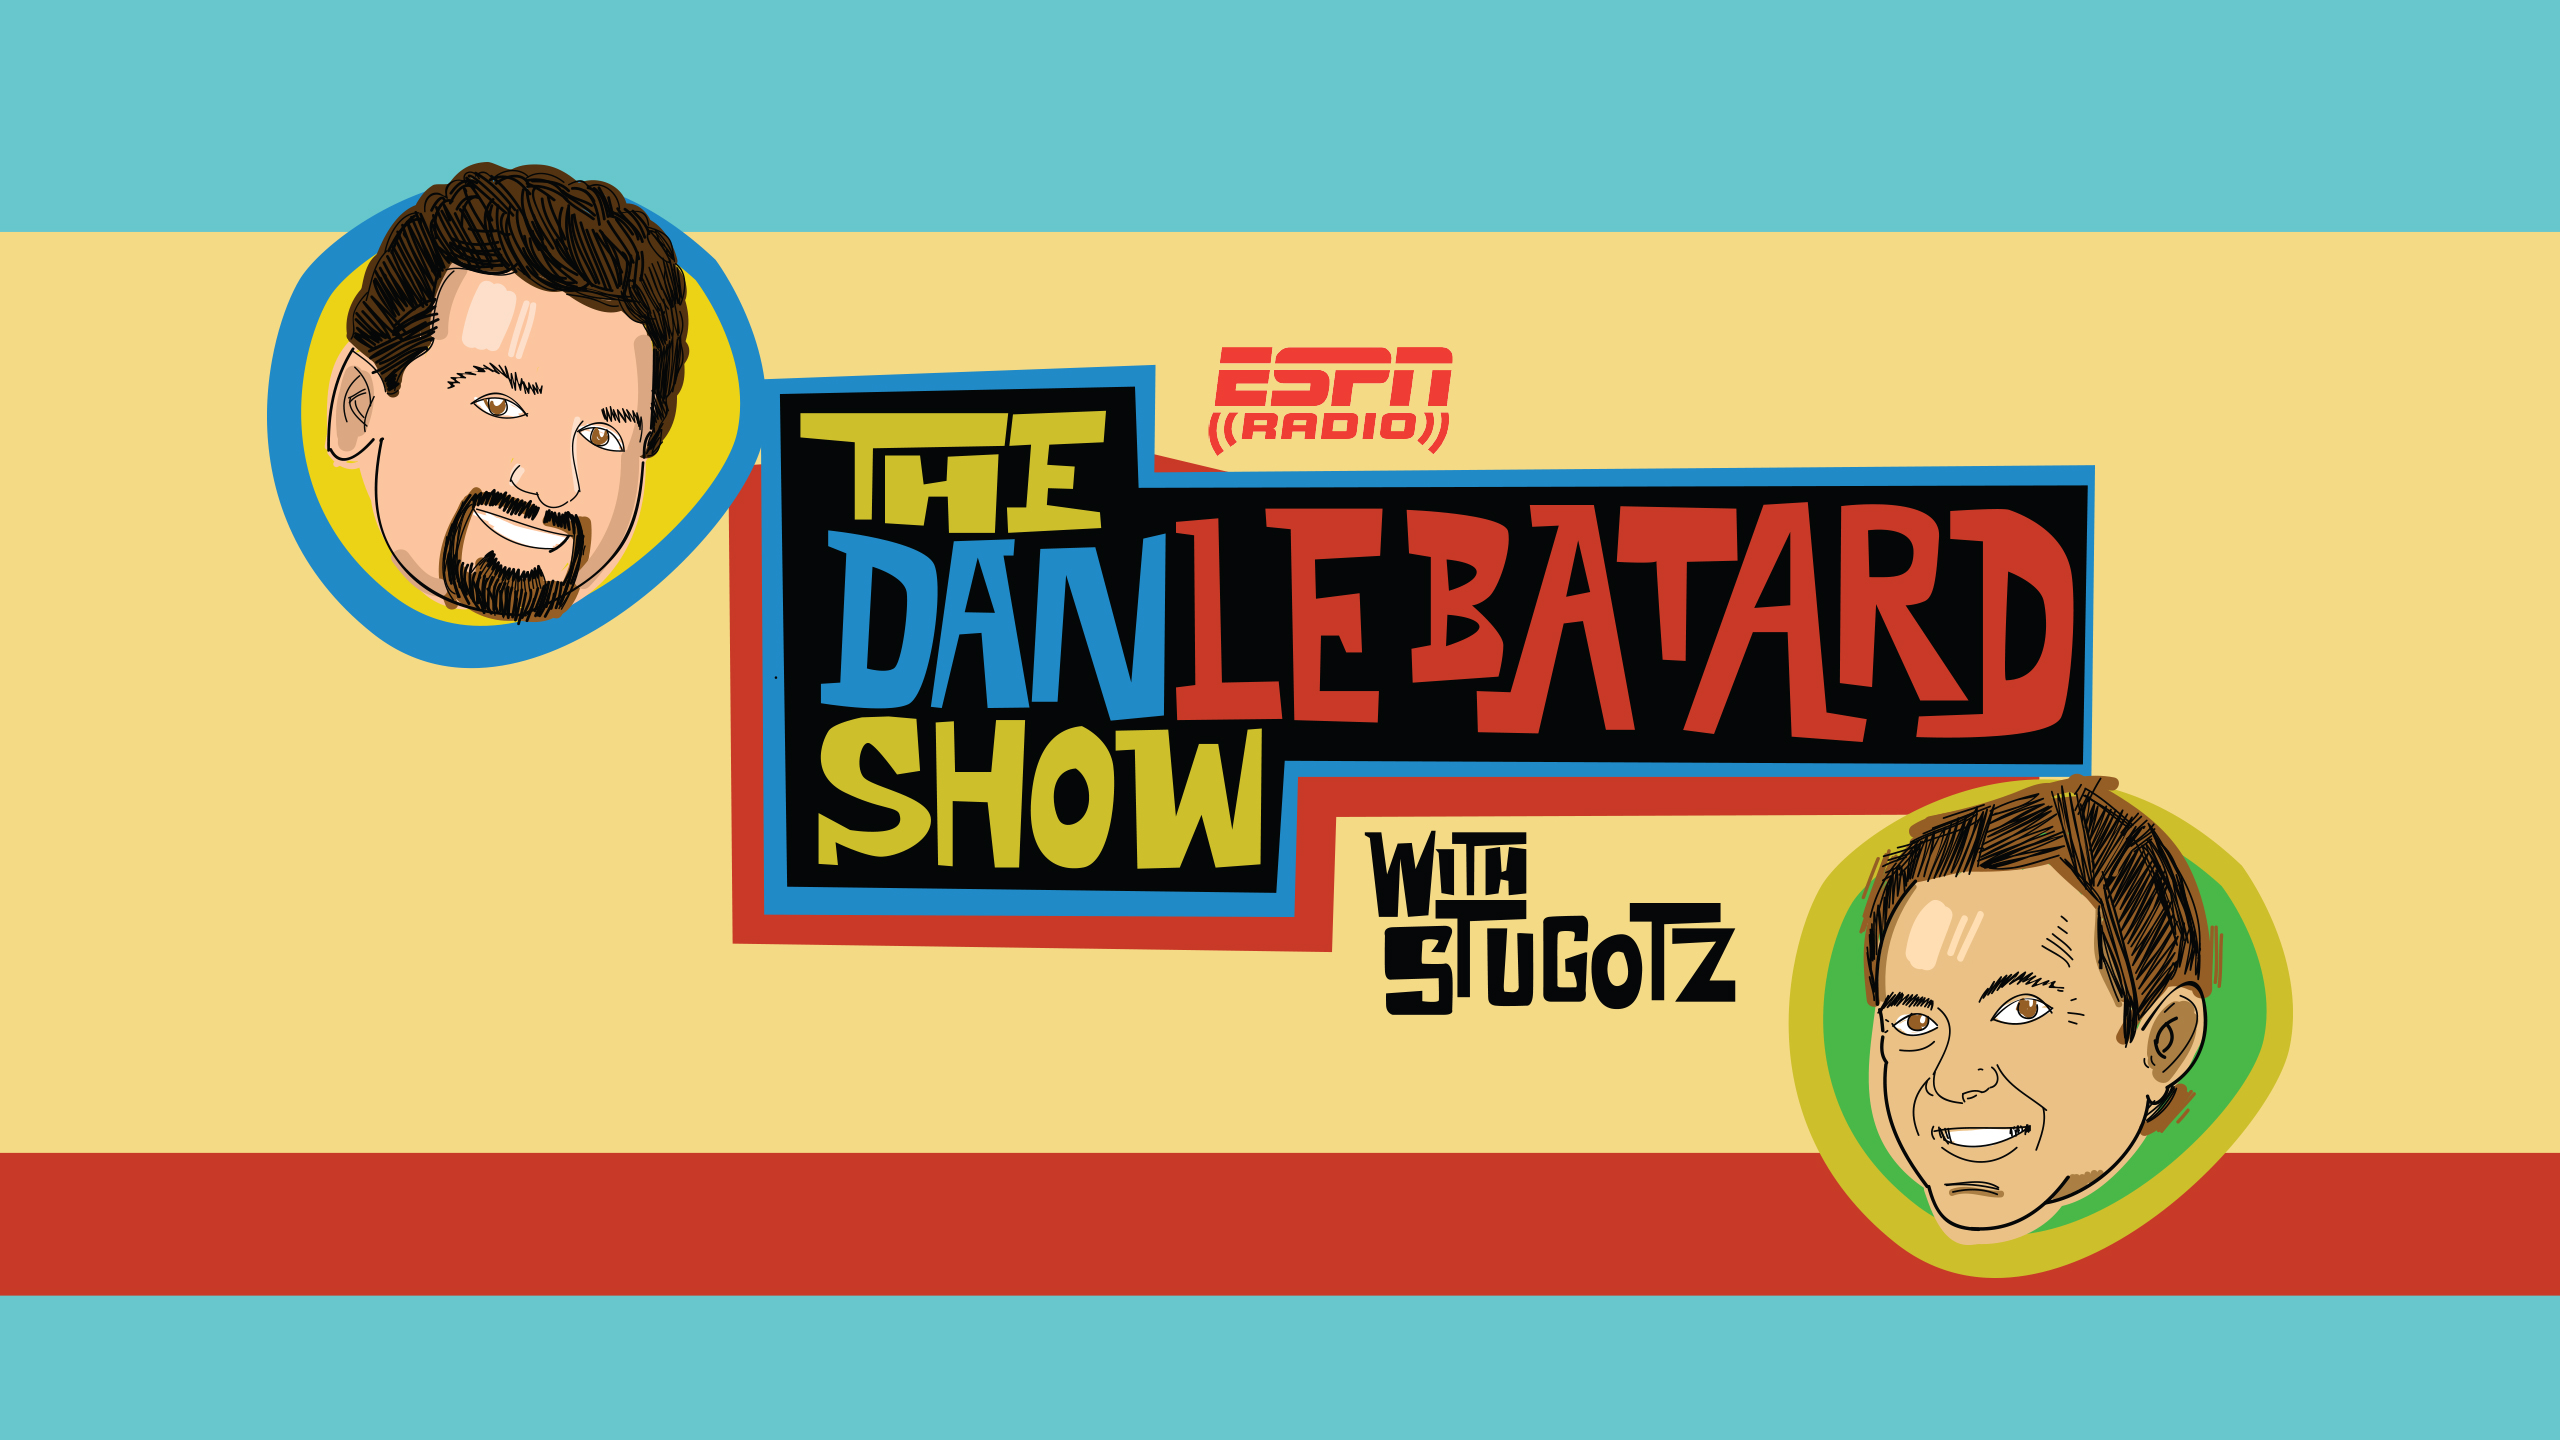 Tue, 4/16 - The Dan Le Batard Show with Stugotz Presented by Progressive